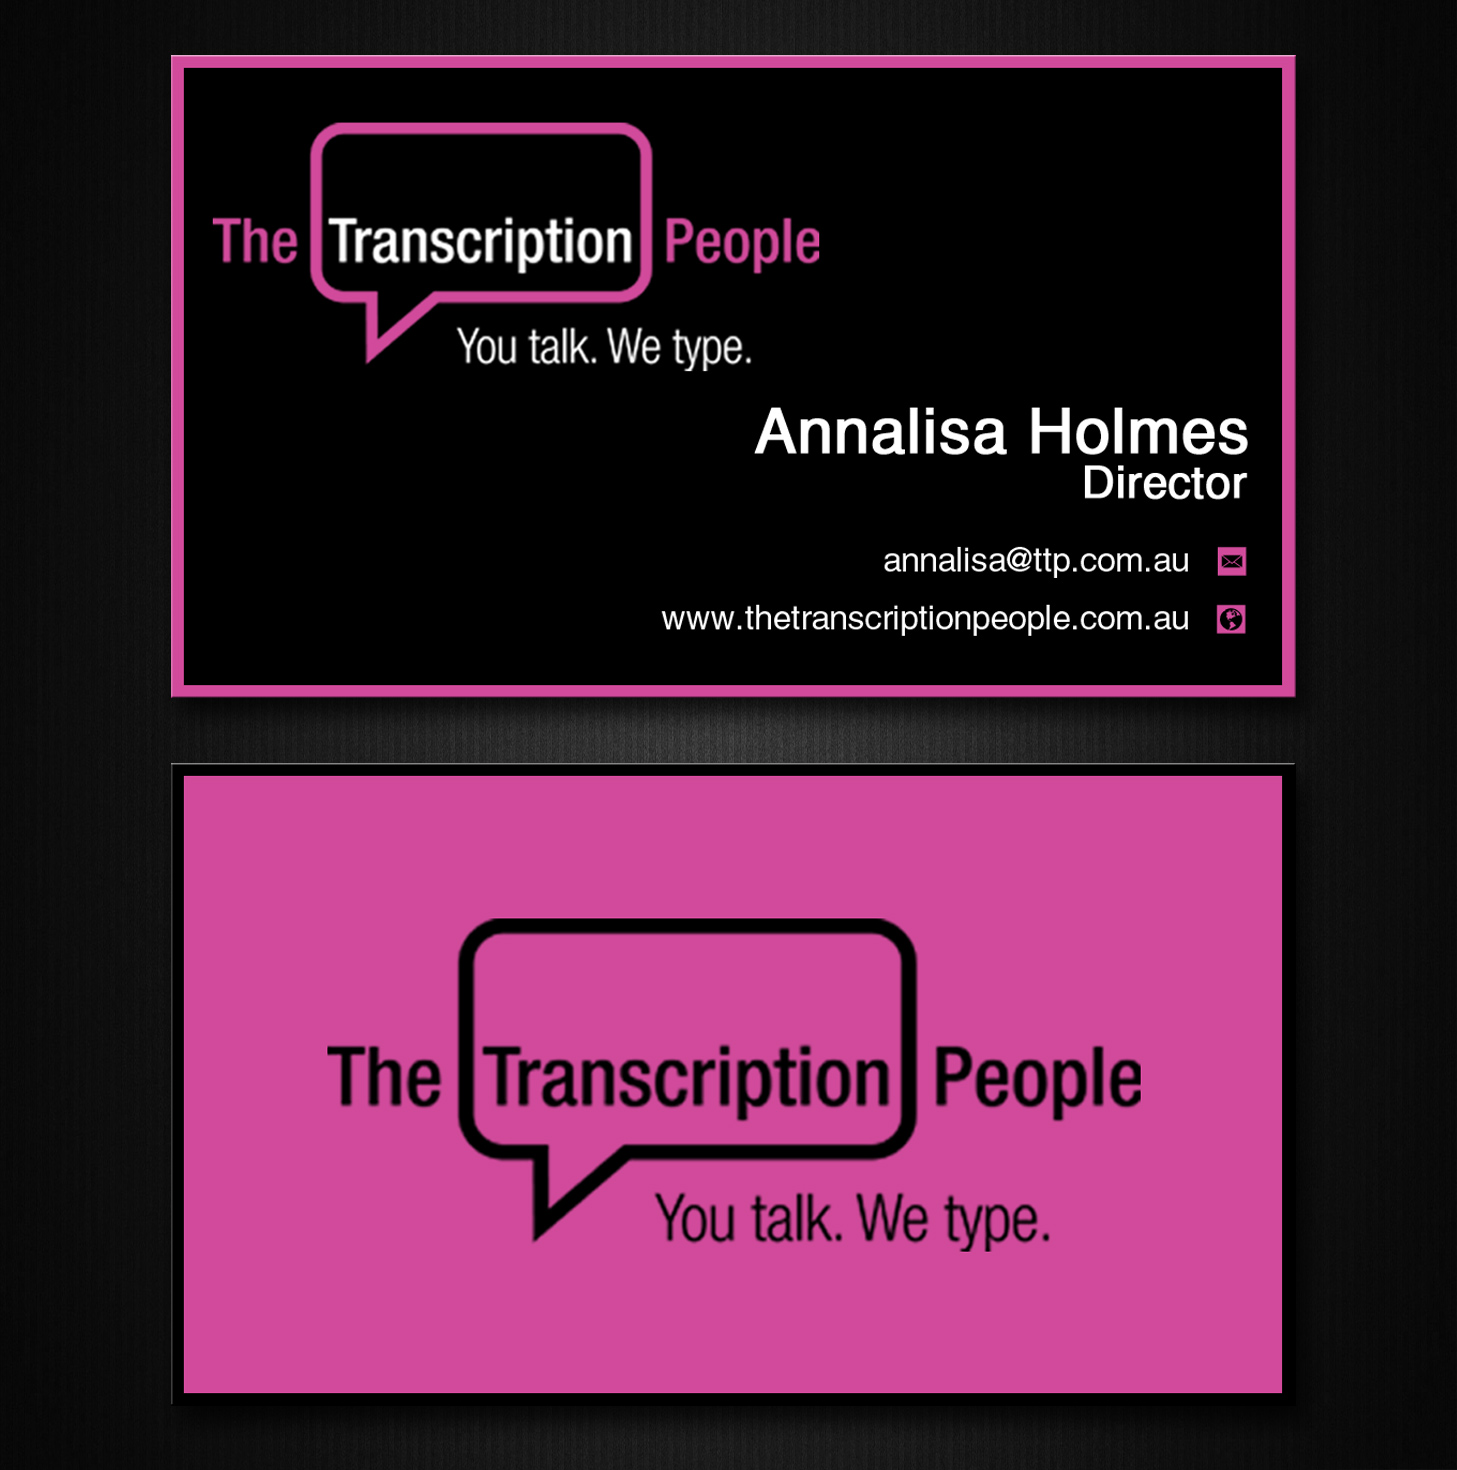 Business card design for the transcription people pty ltd by lanka business card design for the transcription people pty ltd by lanka ama design 9784068 colourmoves